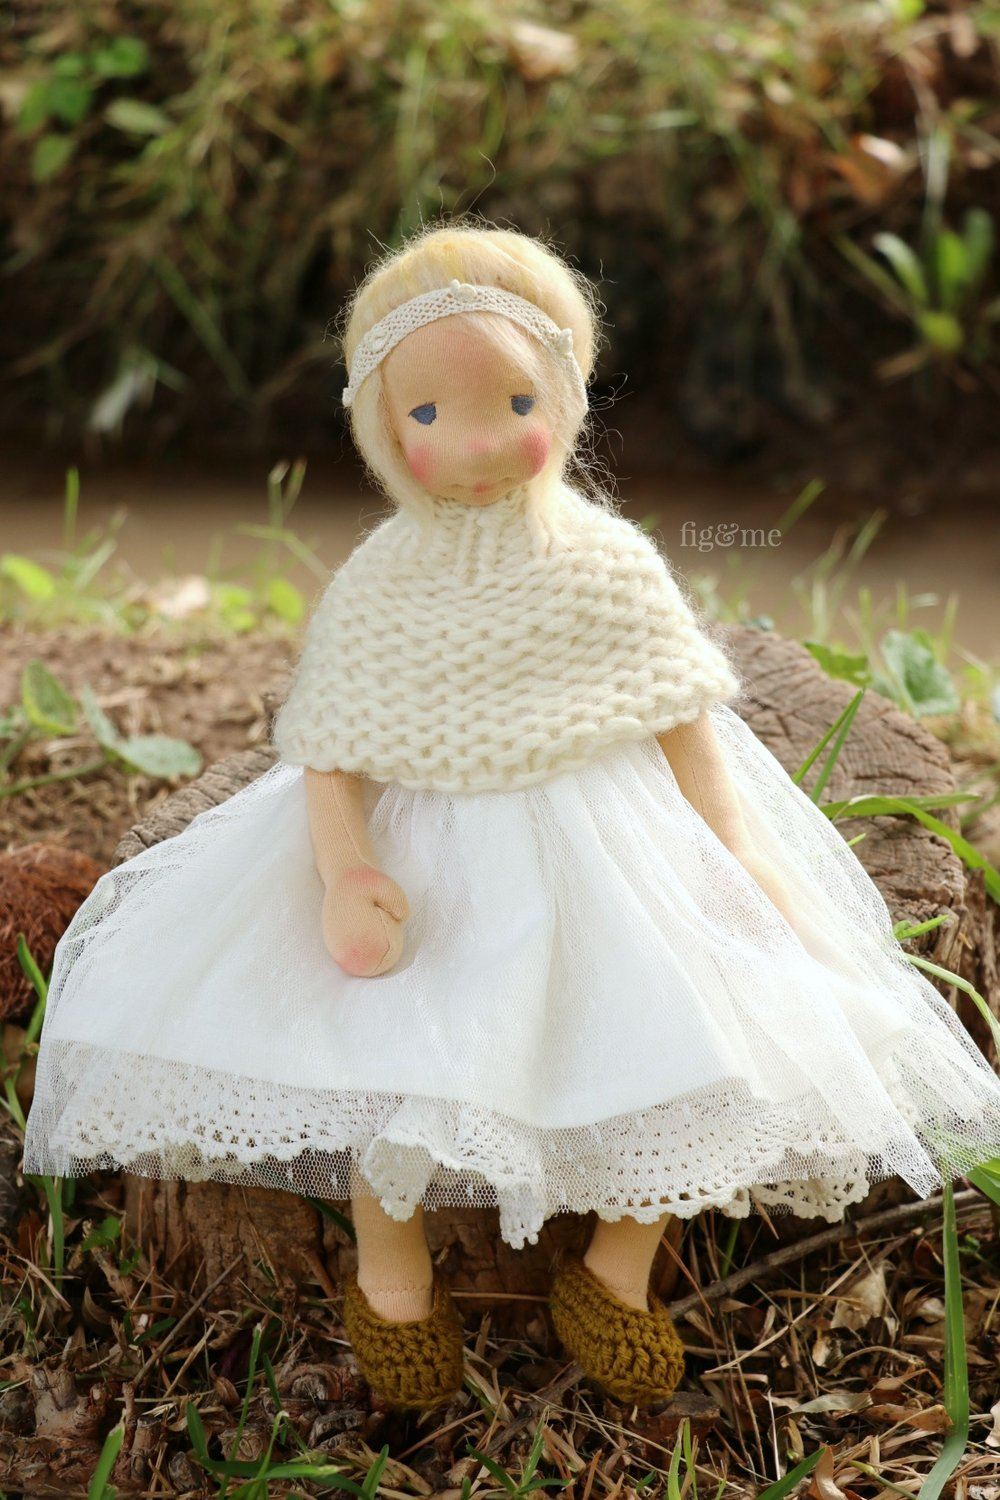 Millie, a poseable art doll by Fig and Me.